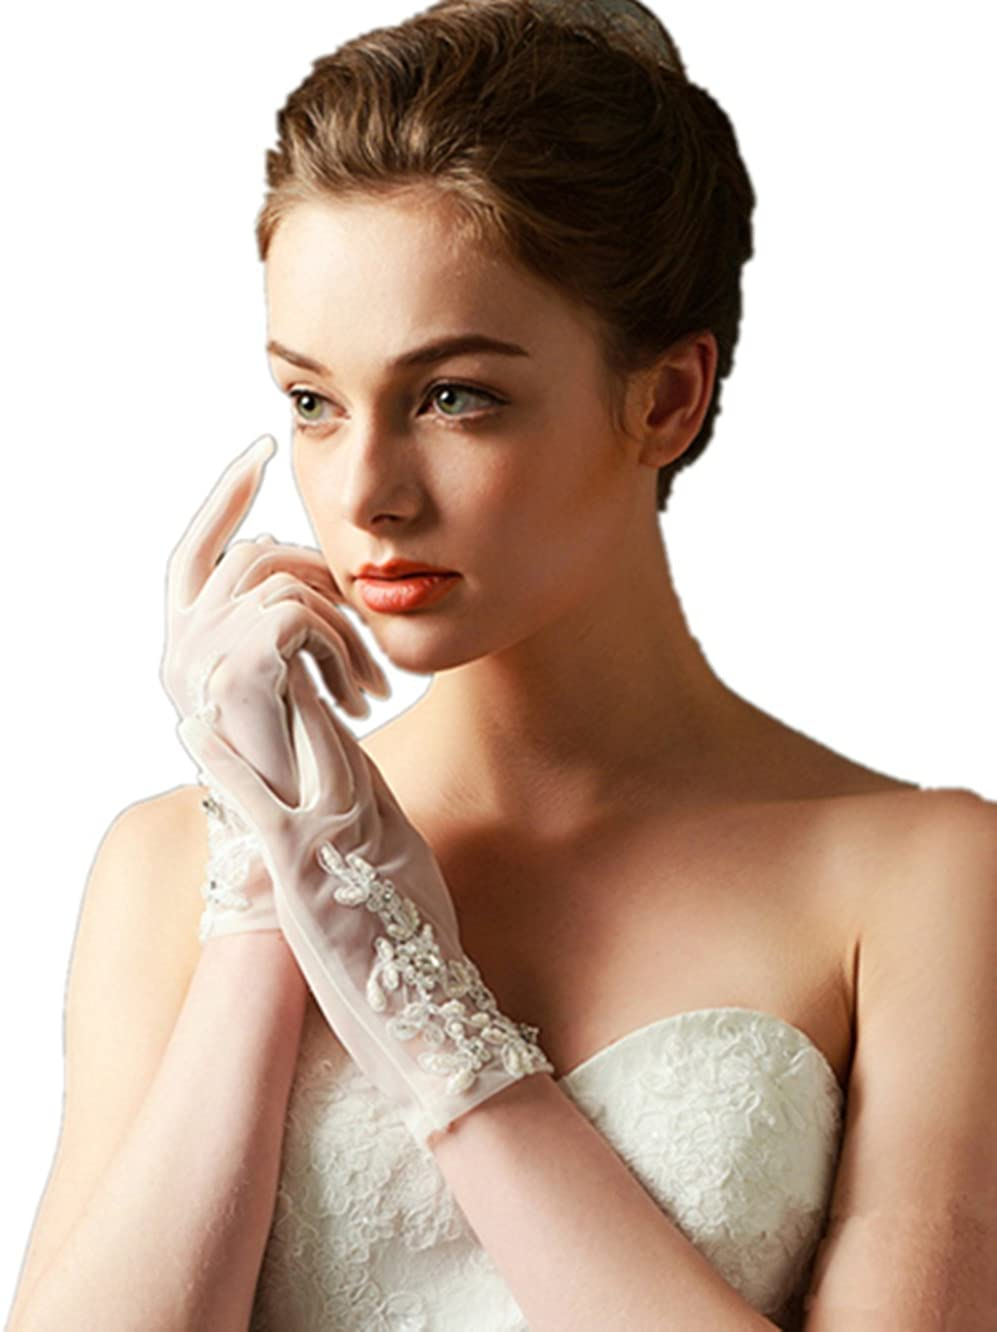 CL Women Sexy Floral Bow Vintage Spring and Summer Short Lace Bride Short Gloves UV Protection Wrist Wedding Gloves